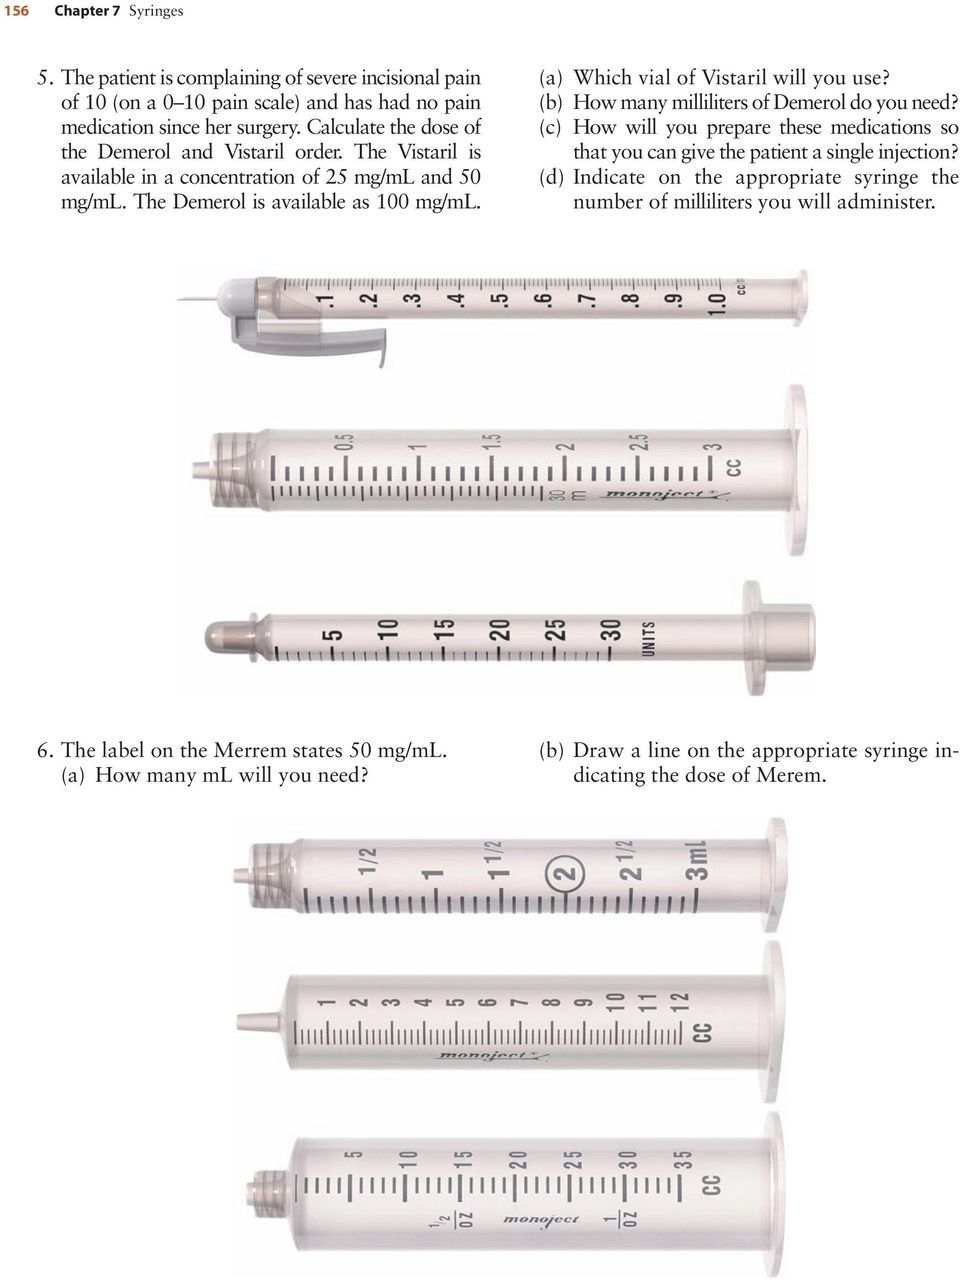 (a) Which vial of Vistaril will you use? (b) How many milliliters of Demerol do you need? (c) How will you prepare these medications so that you can give the patient a single injection?